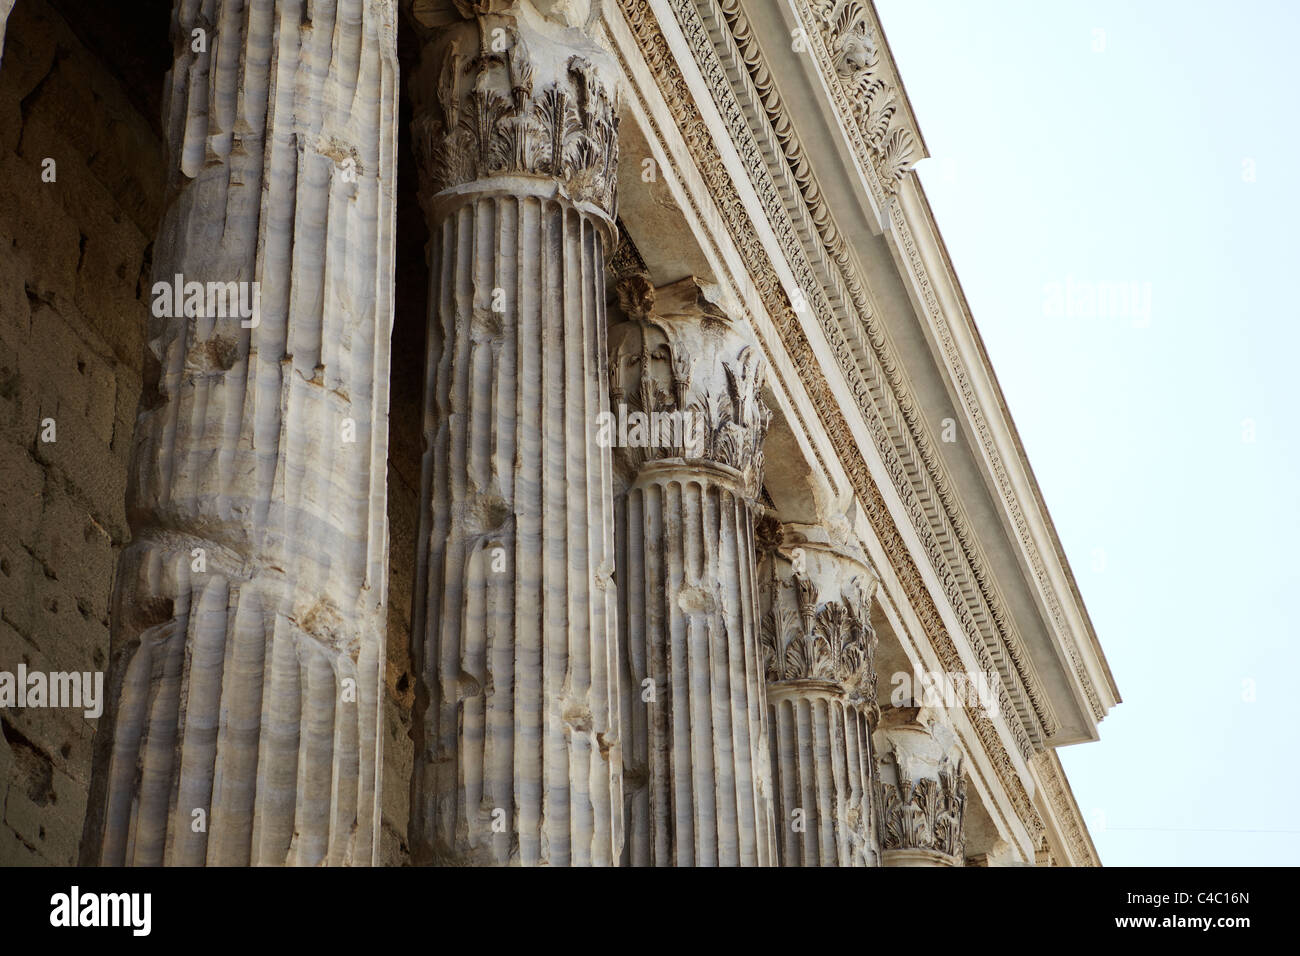 Corinthian columns at The Pantheon in Rome, Italy - Stock Image